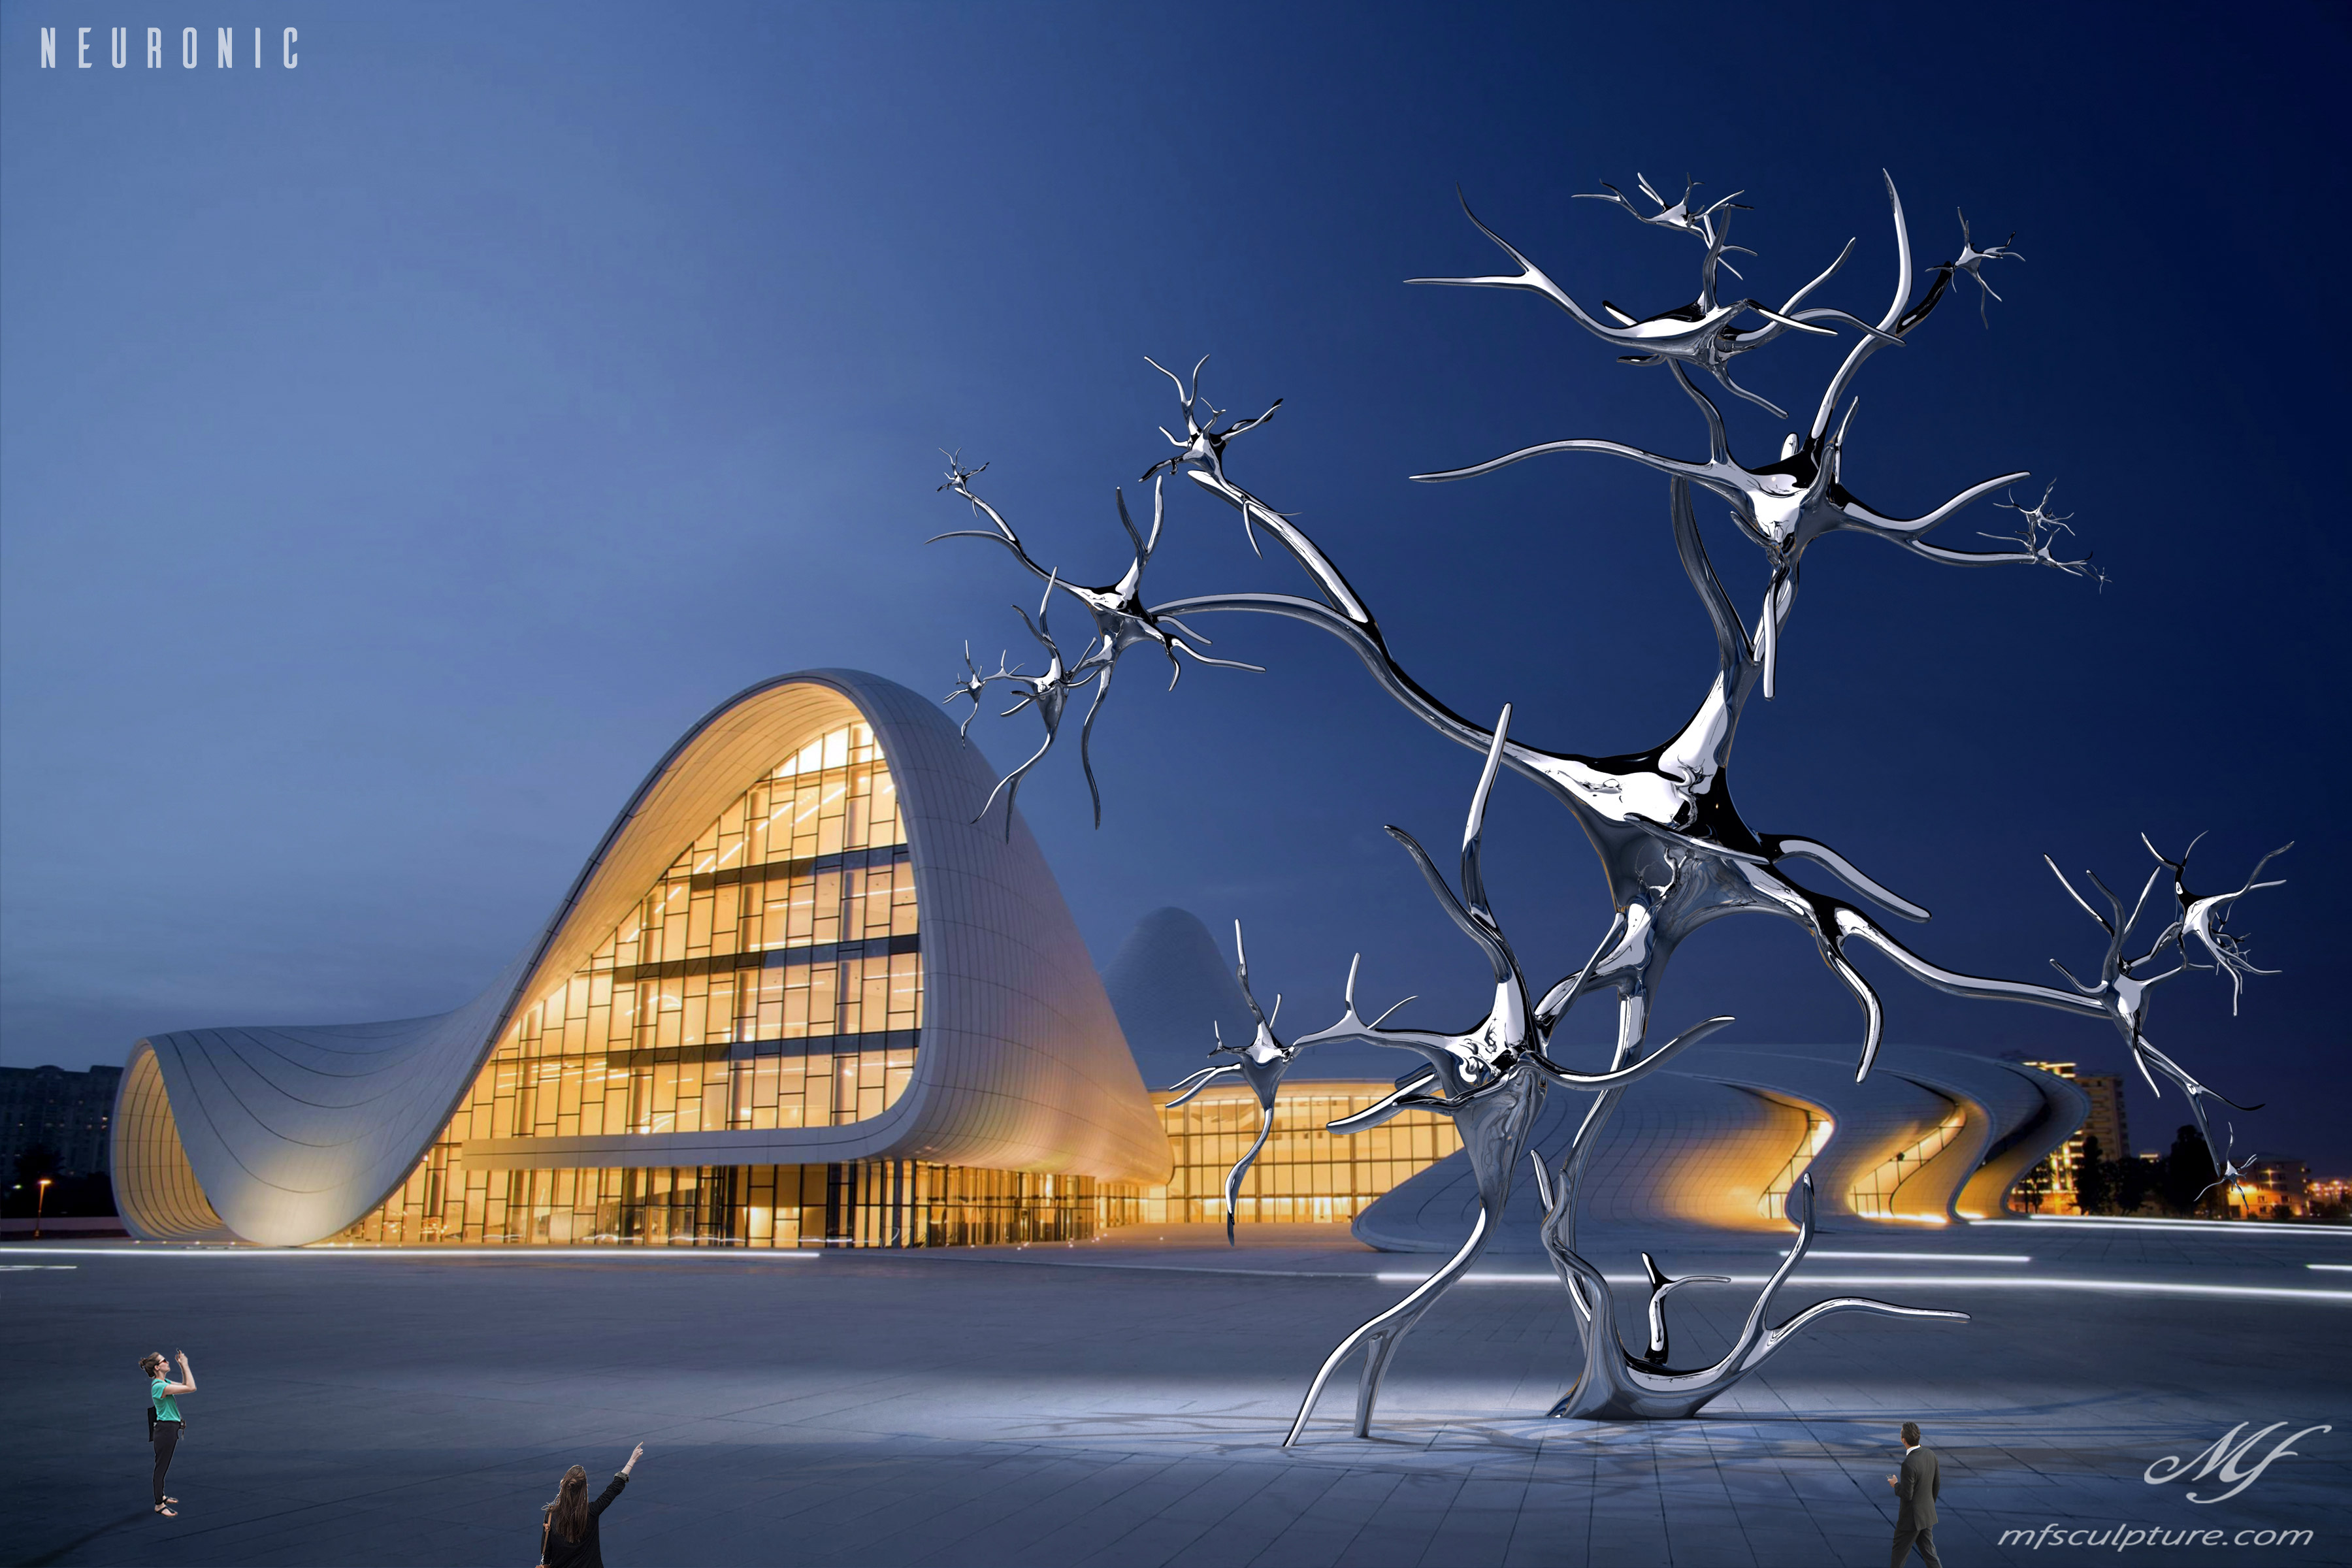 heydar aliyev center baku zaha hadid Modern Sculpture Neuronic Neuron Brain 5